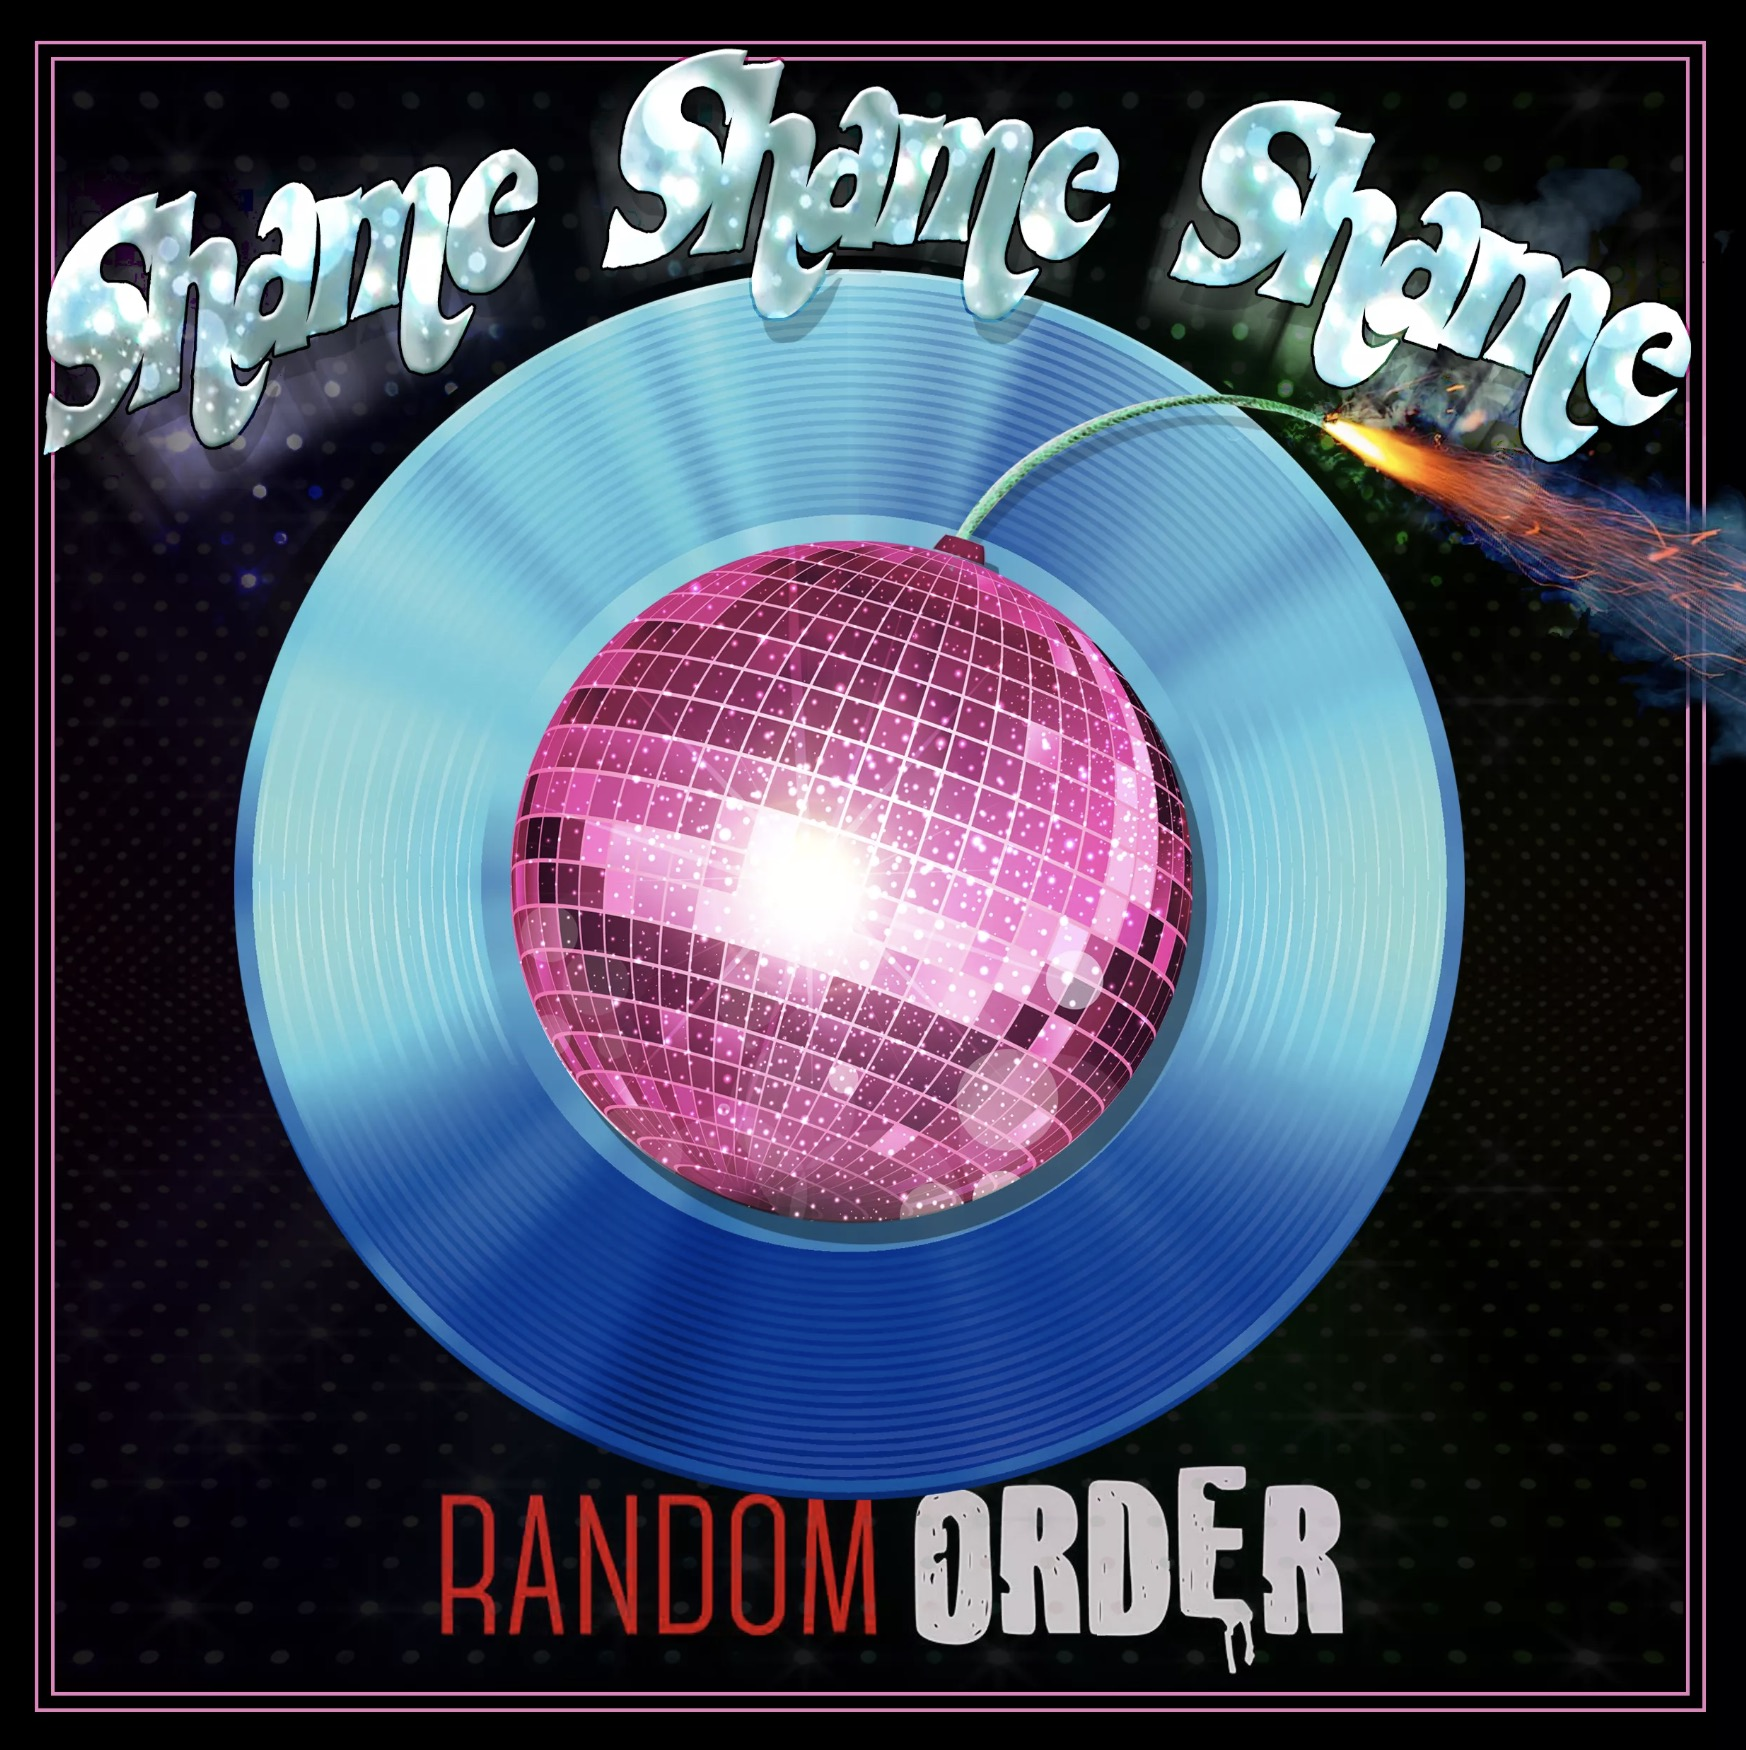 shame shame shame random order band parents suck font